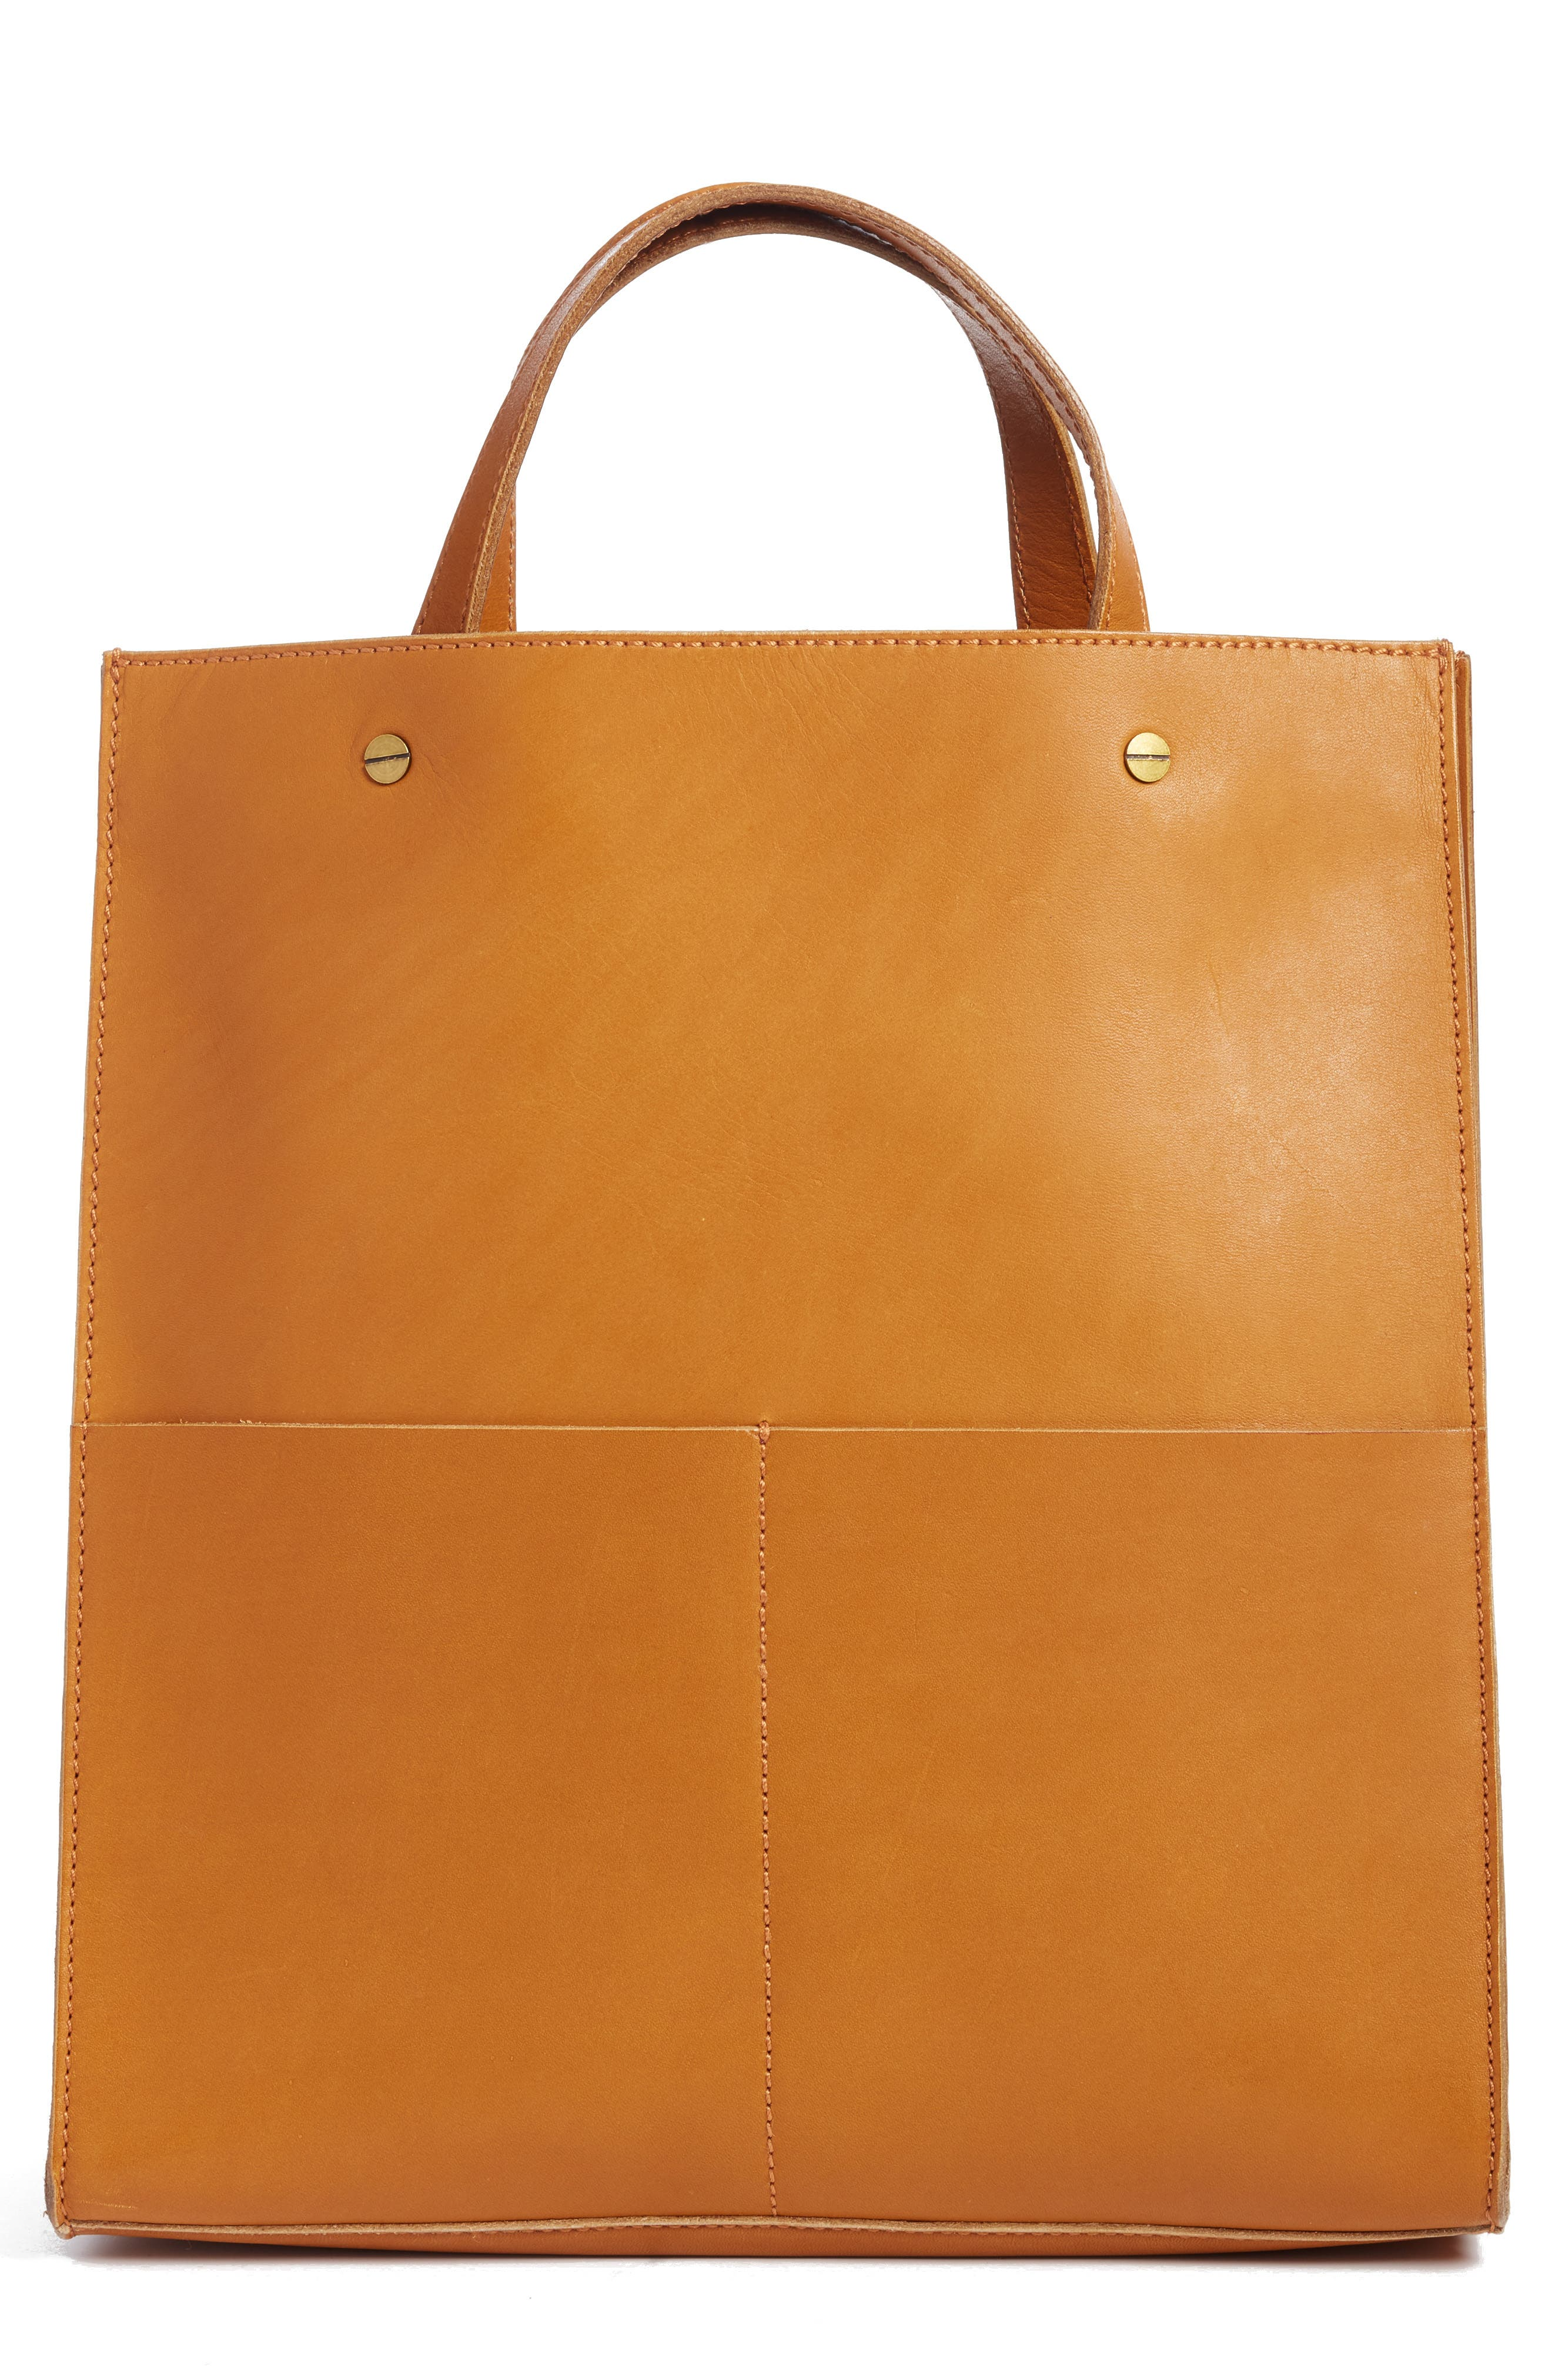 Tote Bags for Women: Canvas, Leather, Nylon & More | Nordstrom